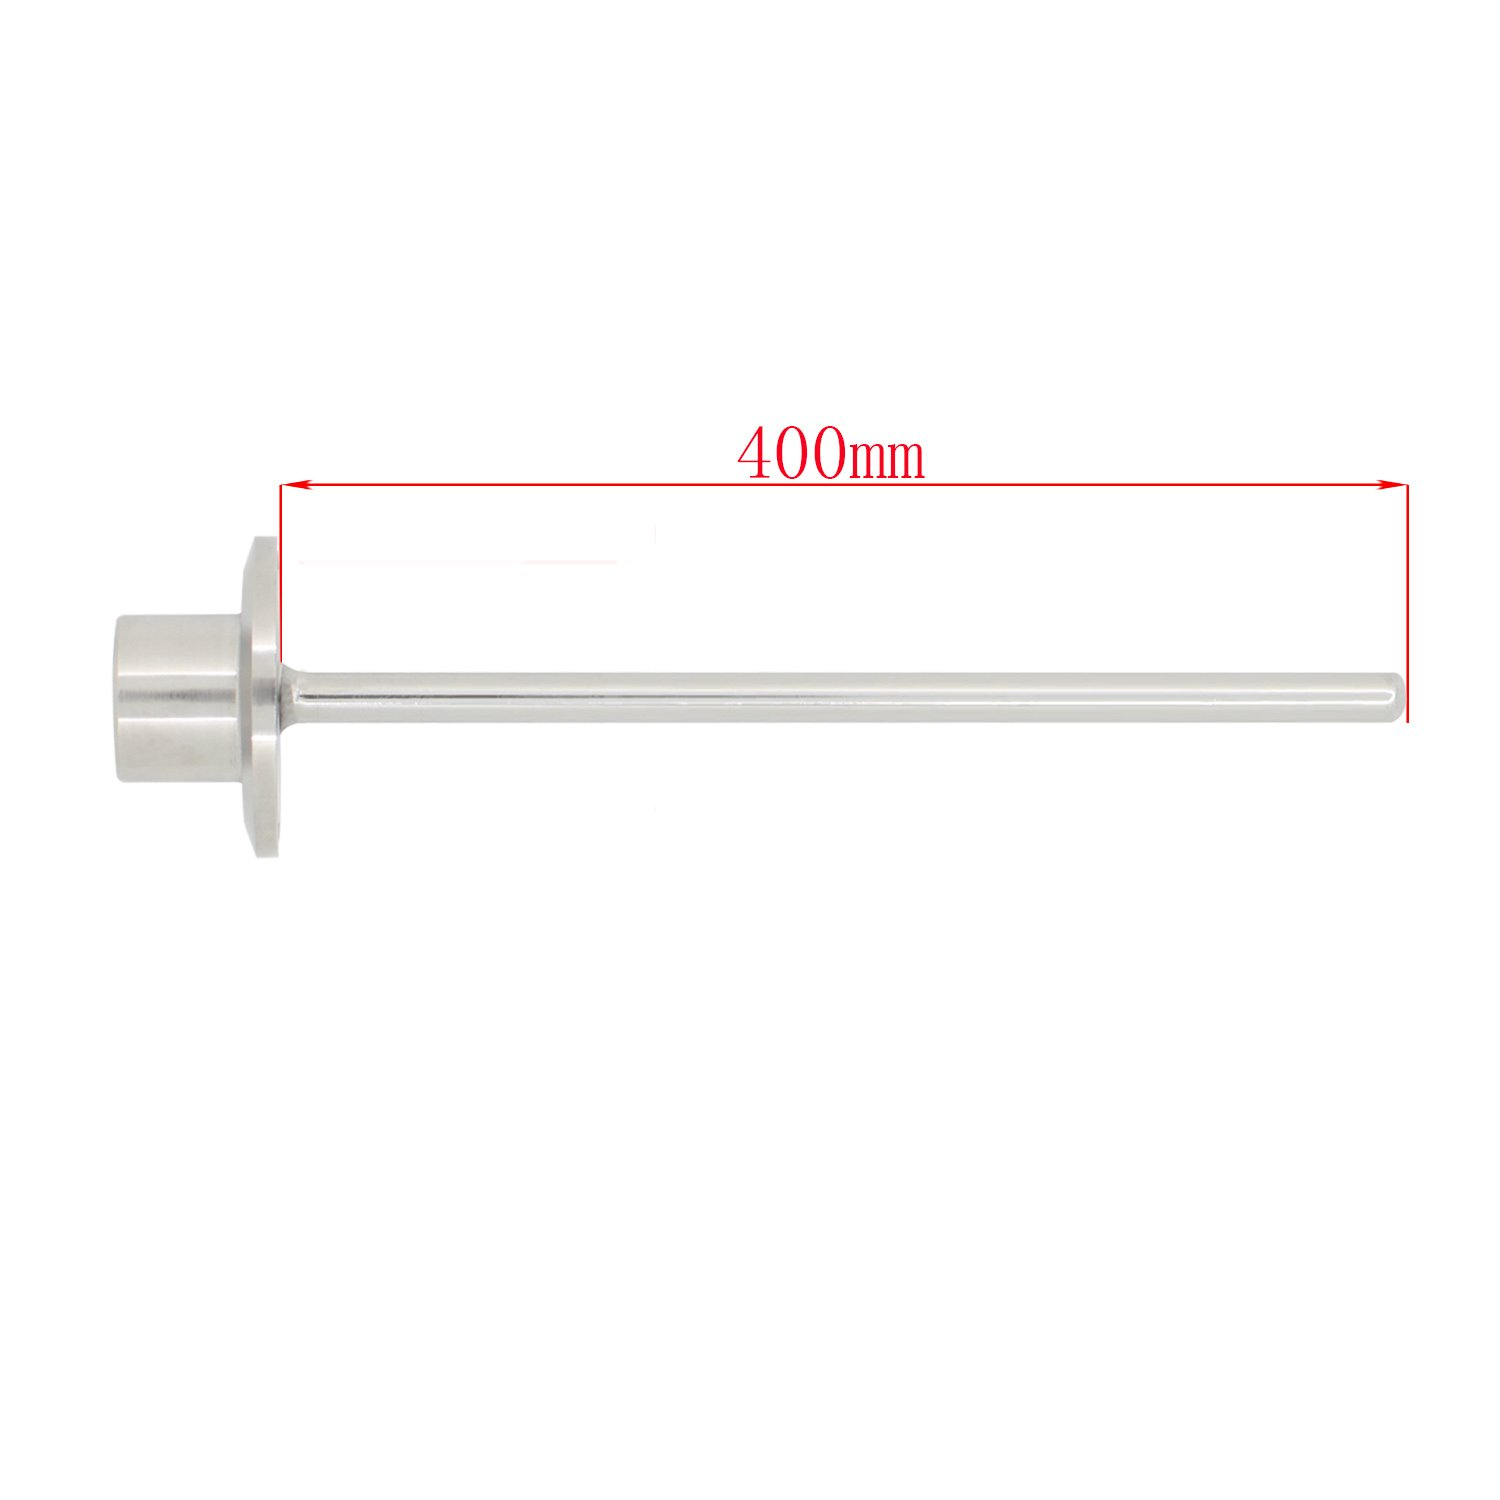 400mm 1.5 inch tri clamp thermowell with 1//2 inch Internal Thread 55mm 100mm 150mm 200mm 300mm 400mm 500mm